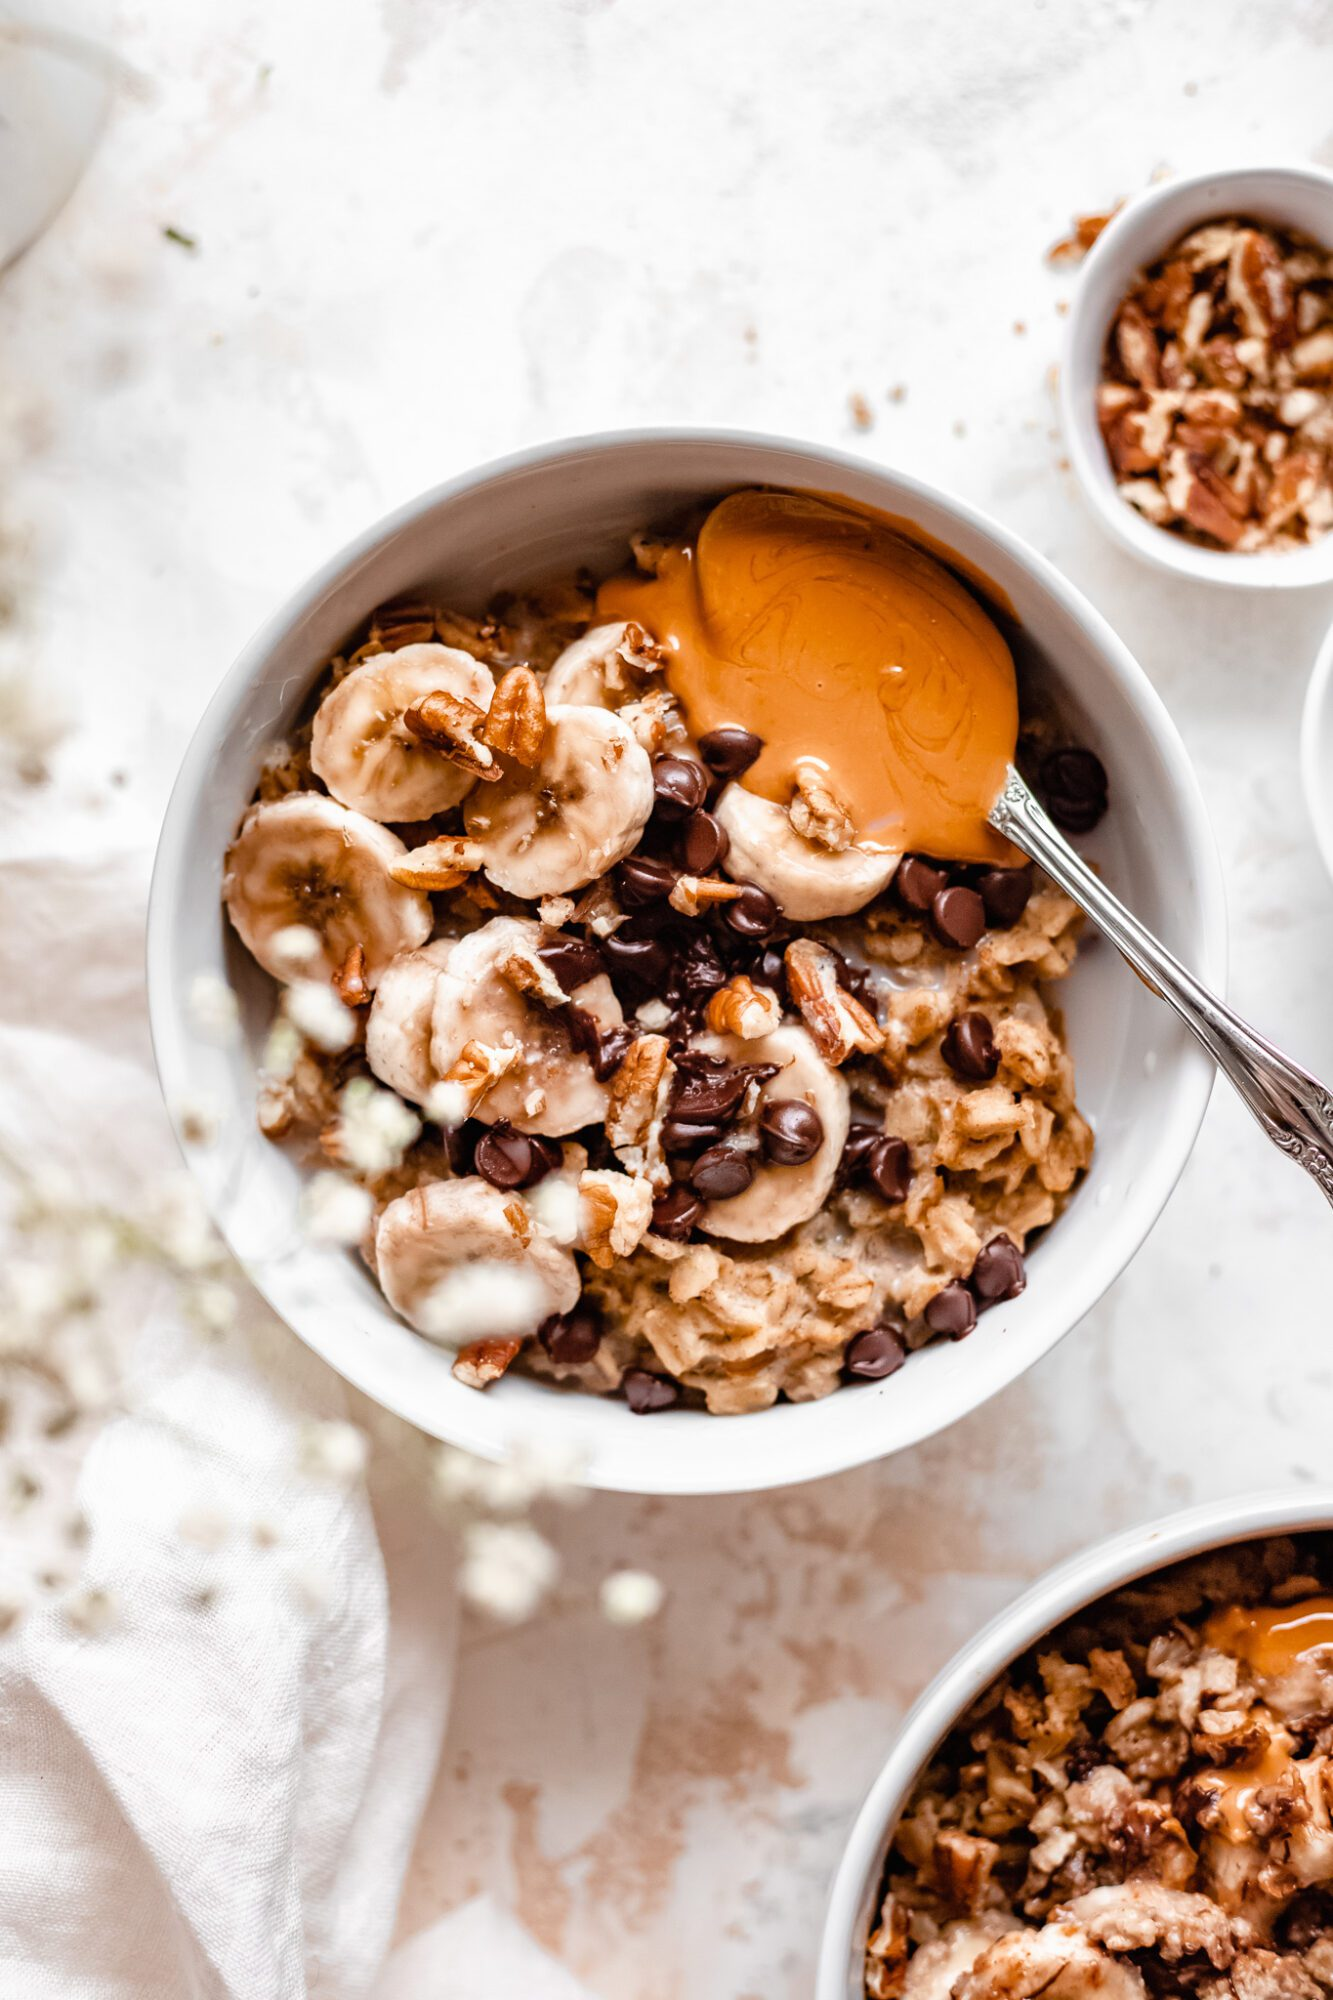 bowl with toppings on oatmeal